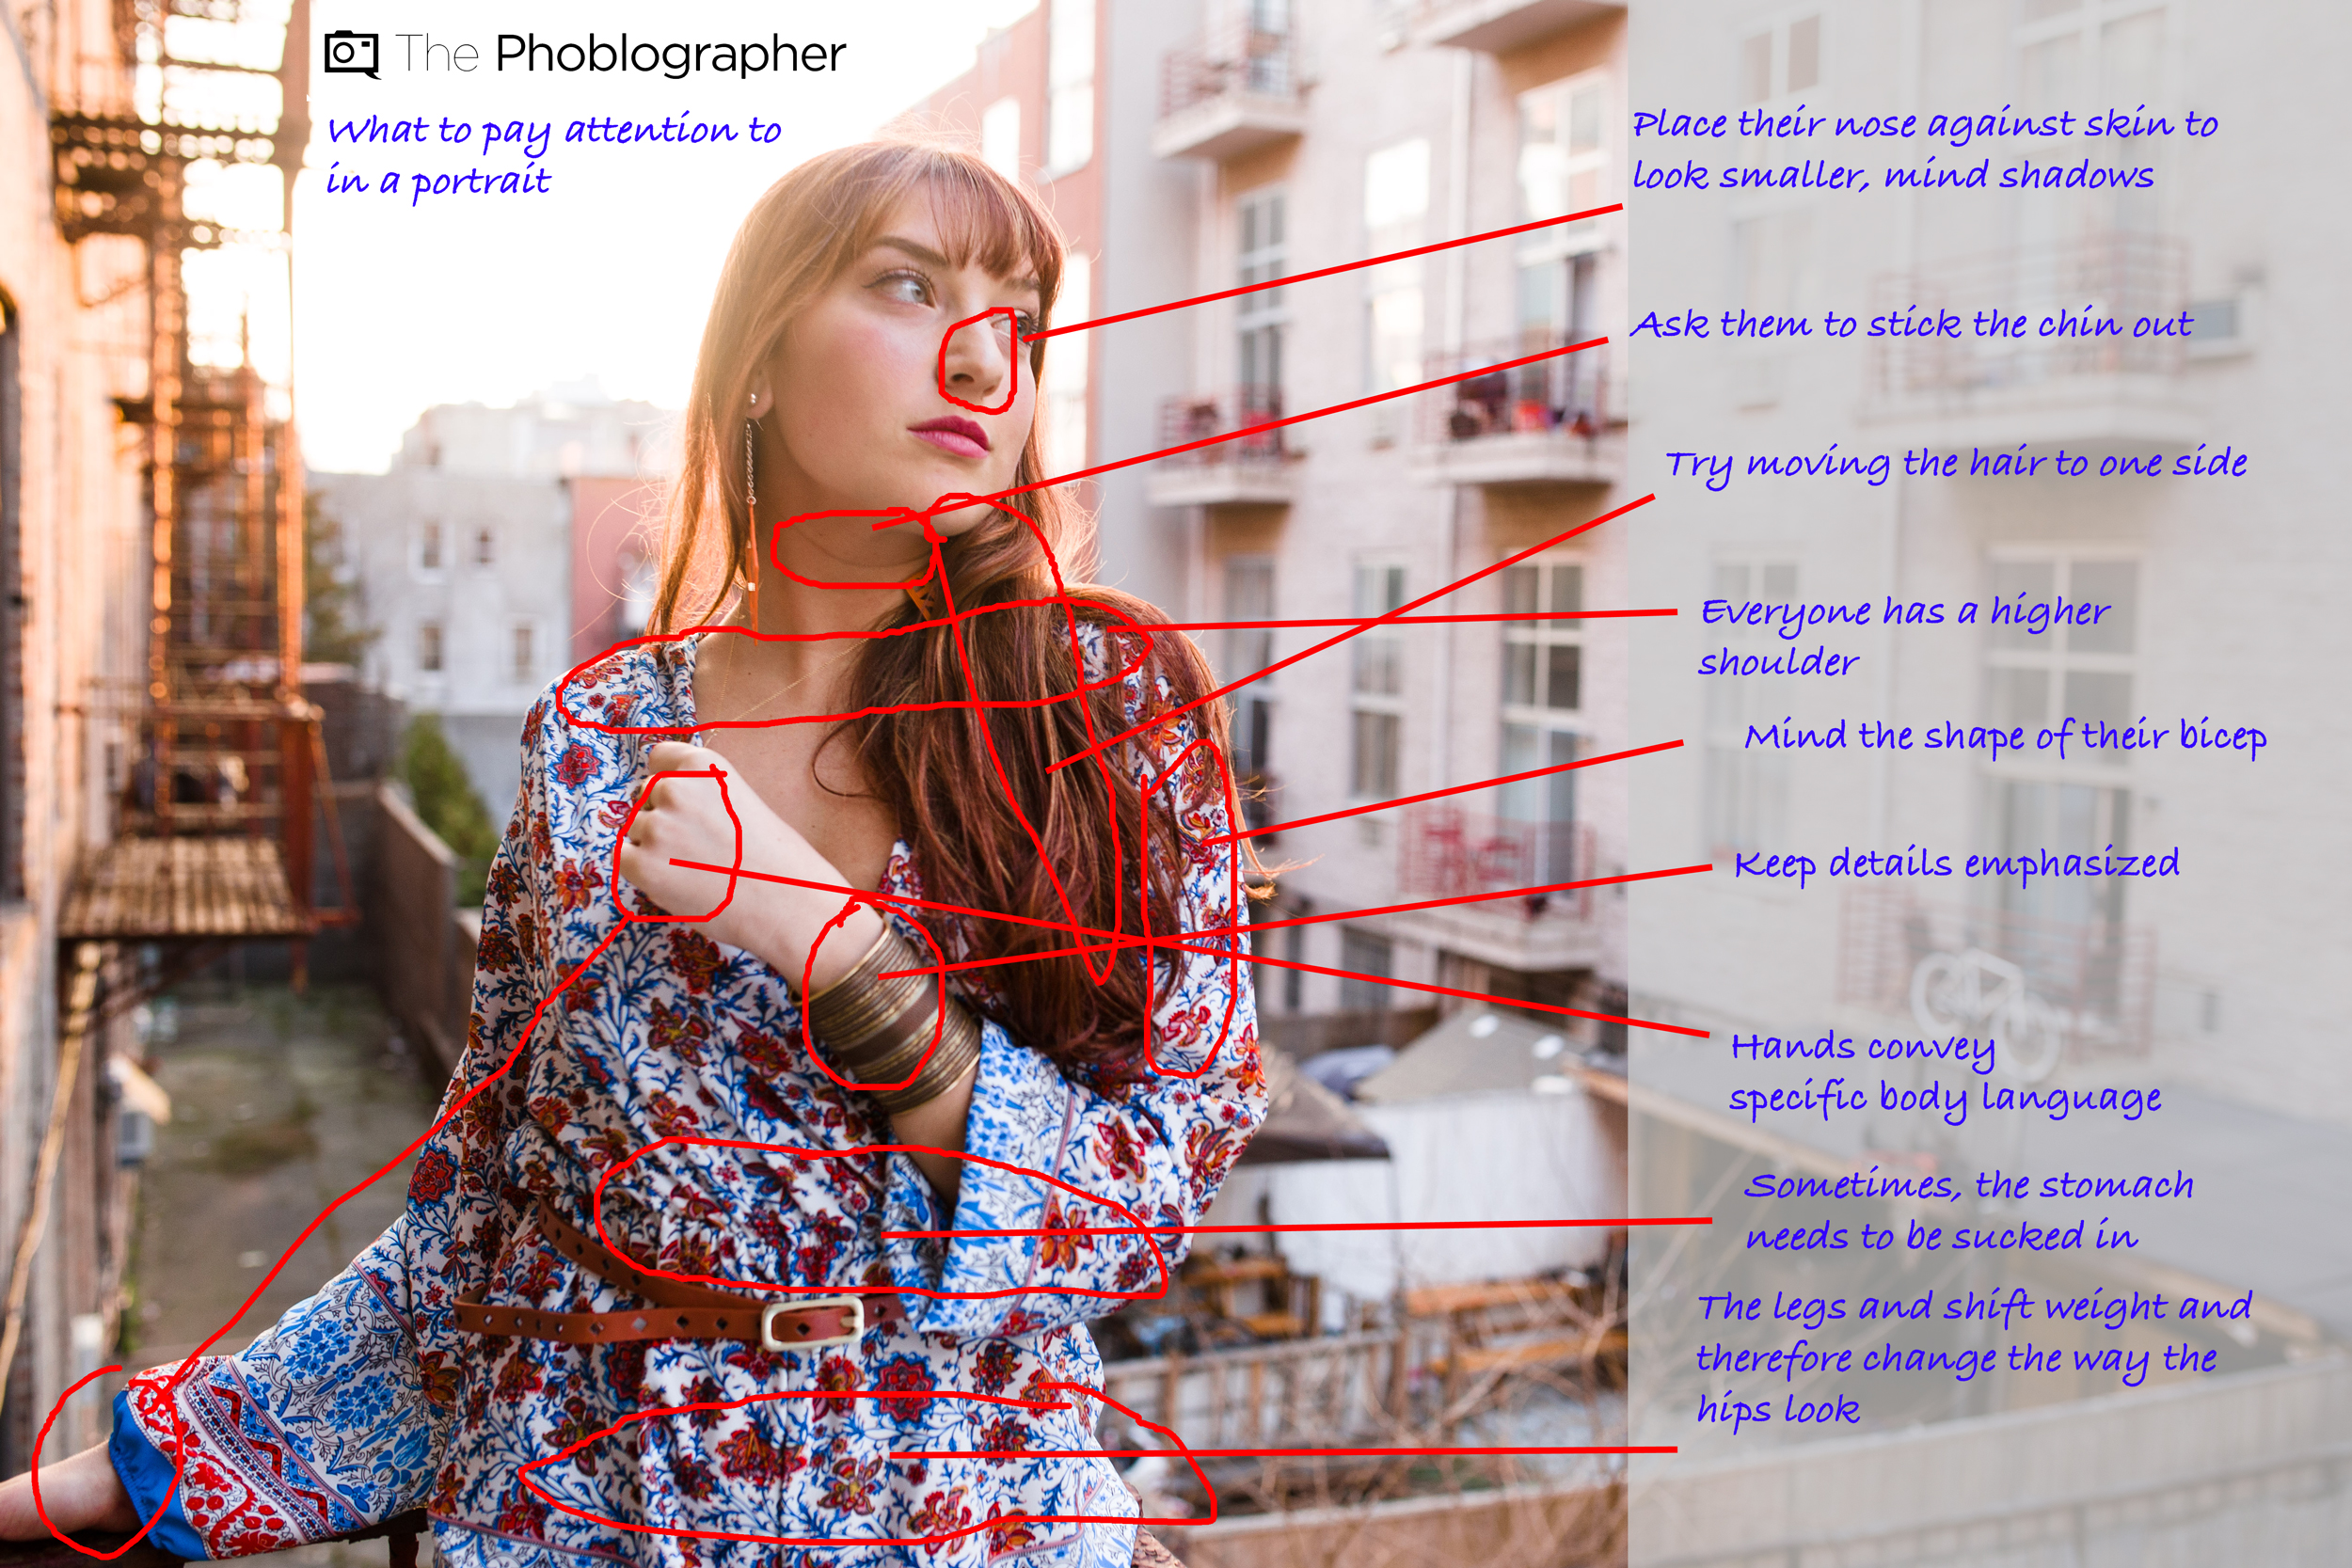 The-Phoblographer-What-to-Pay-Attention-to-in-a-Portrait-Infographic